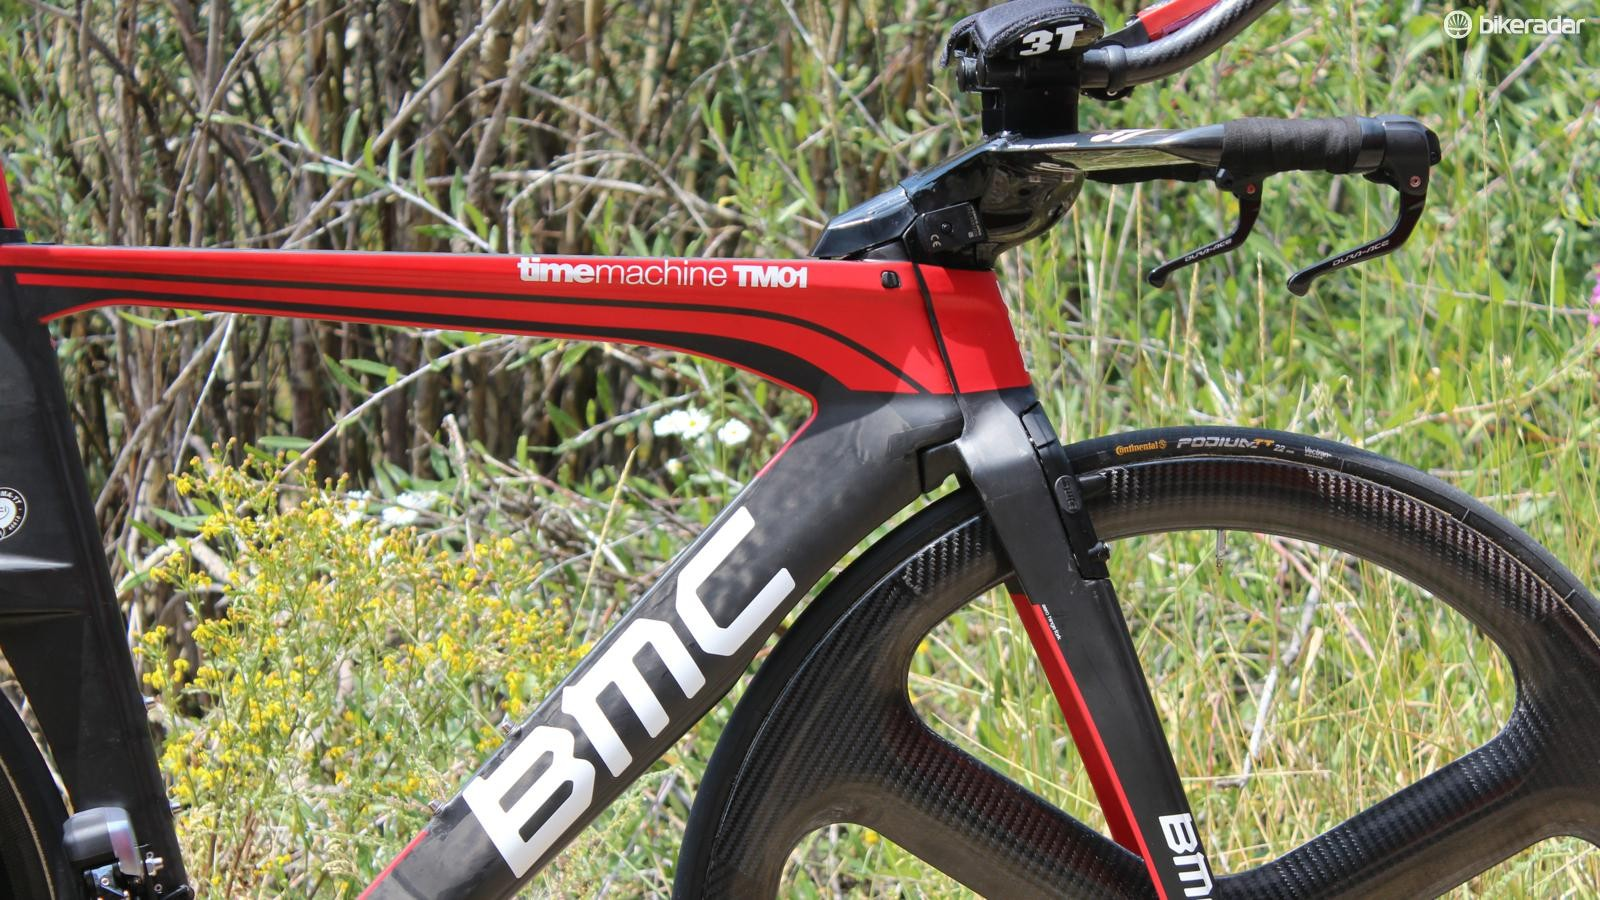 BMC has been owning the USA Pro Challenge stage race in Colorado with multiple stage wins, and on Friday Rohan Dennis smashed the time trial